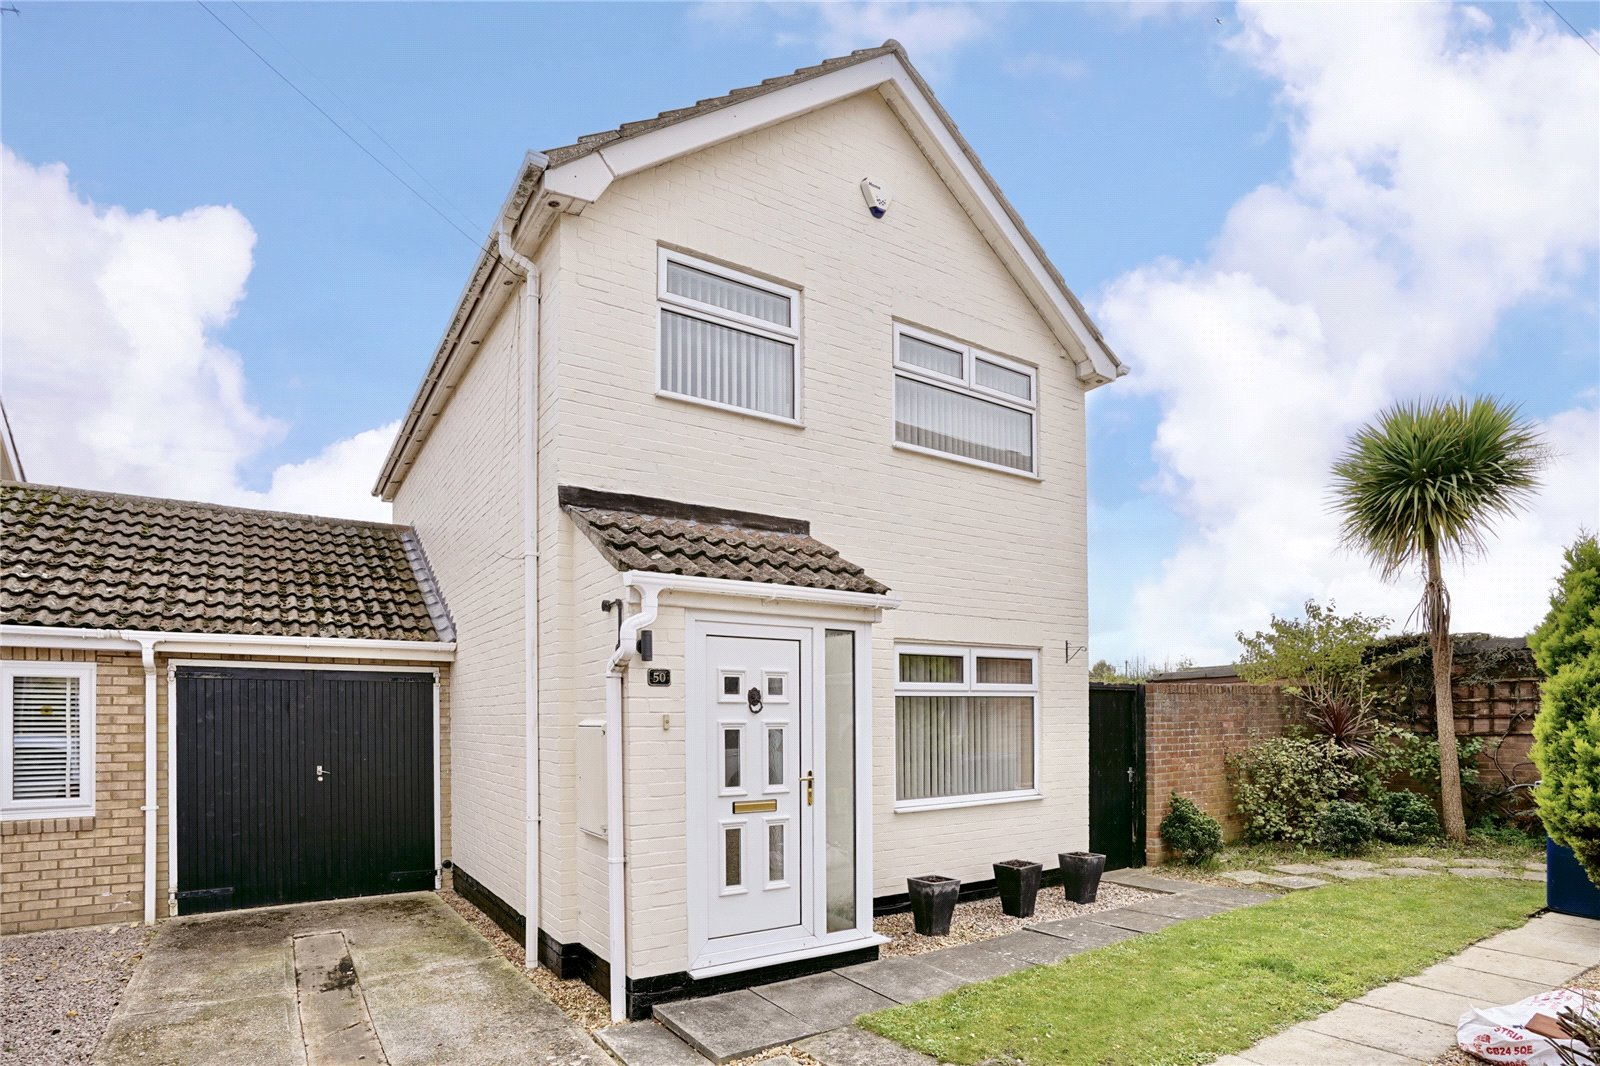 3 bed house for sale in Somersham, PE28 3JU, PE28